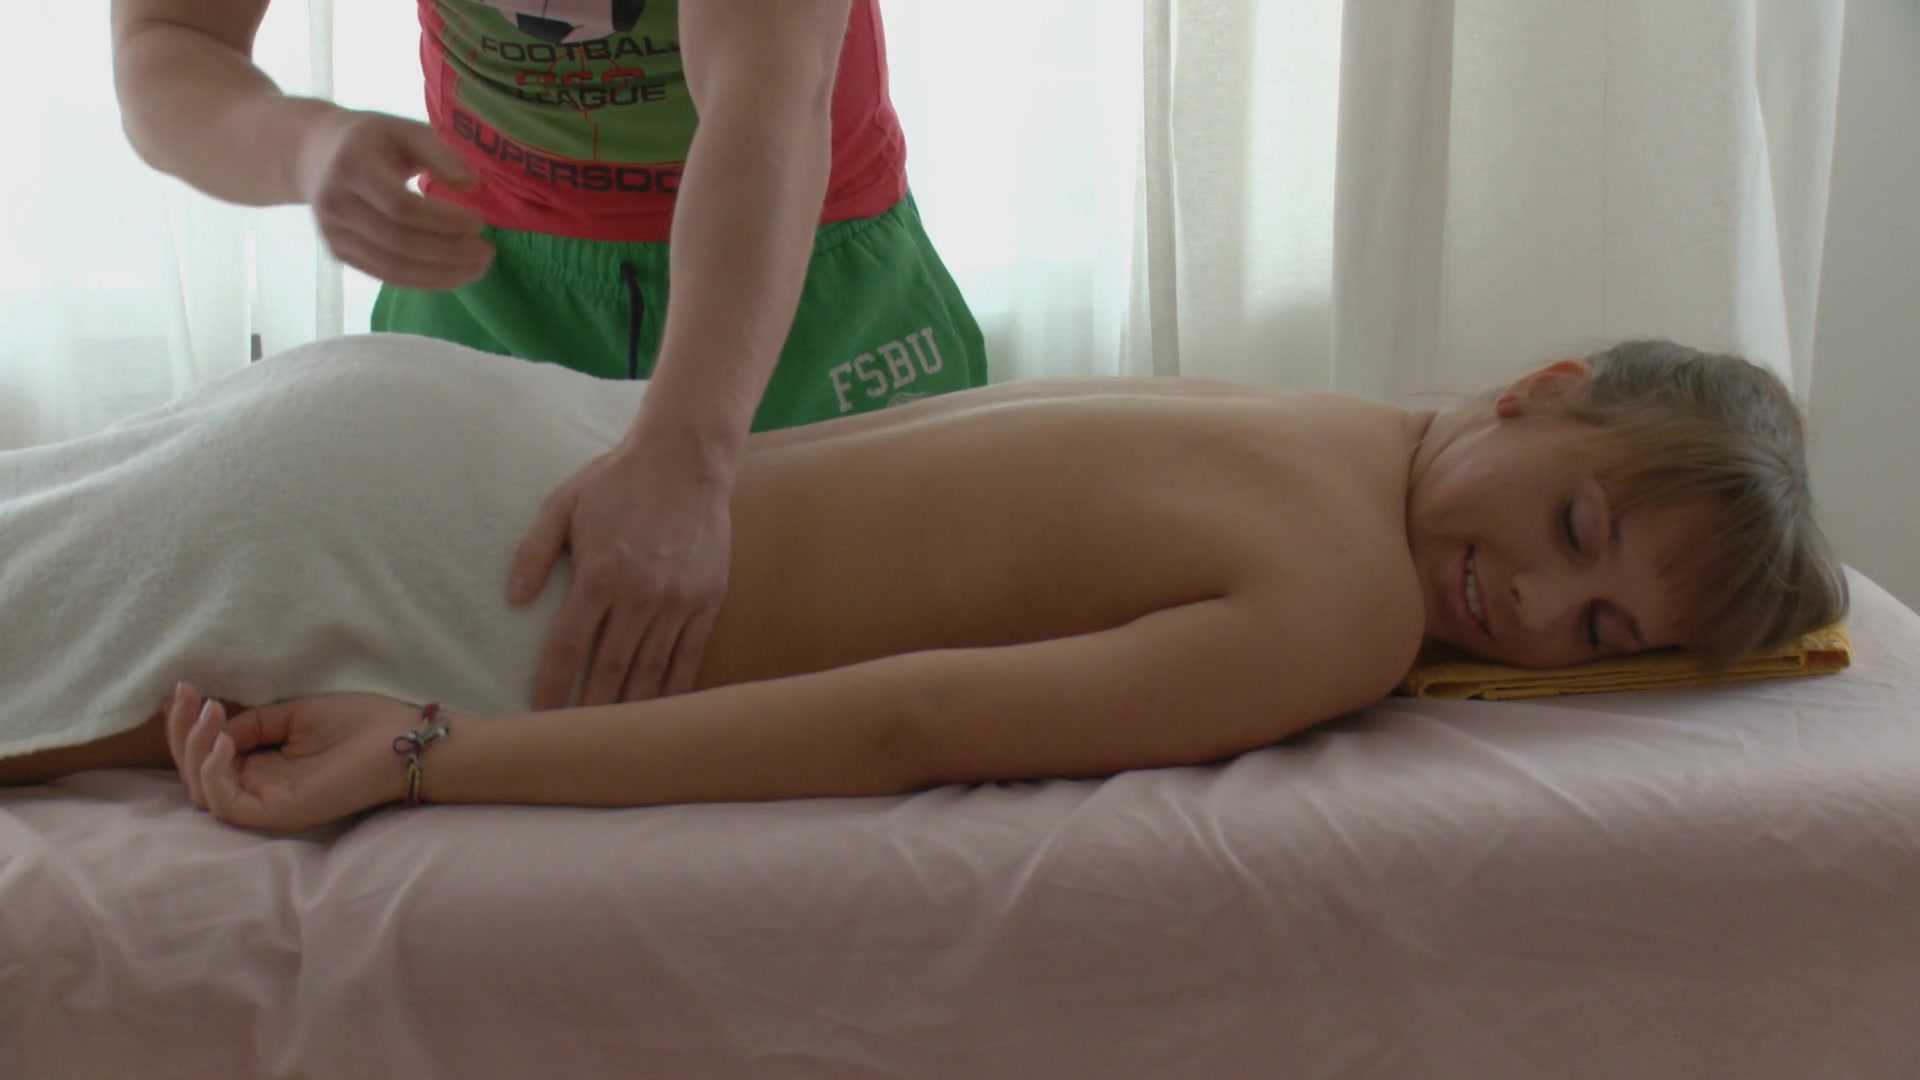 Legal Age Teenager Massage